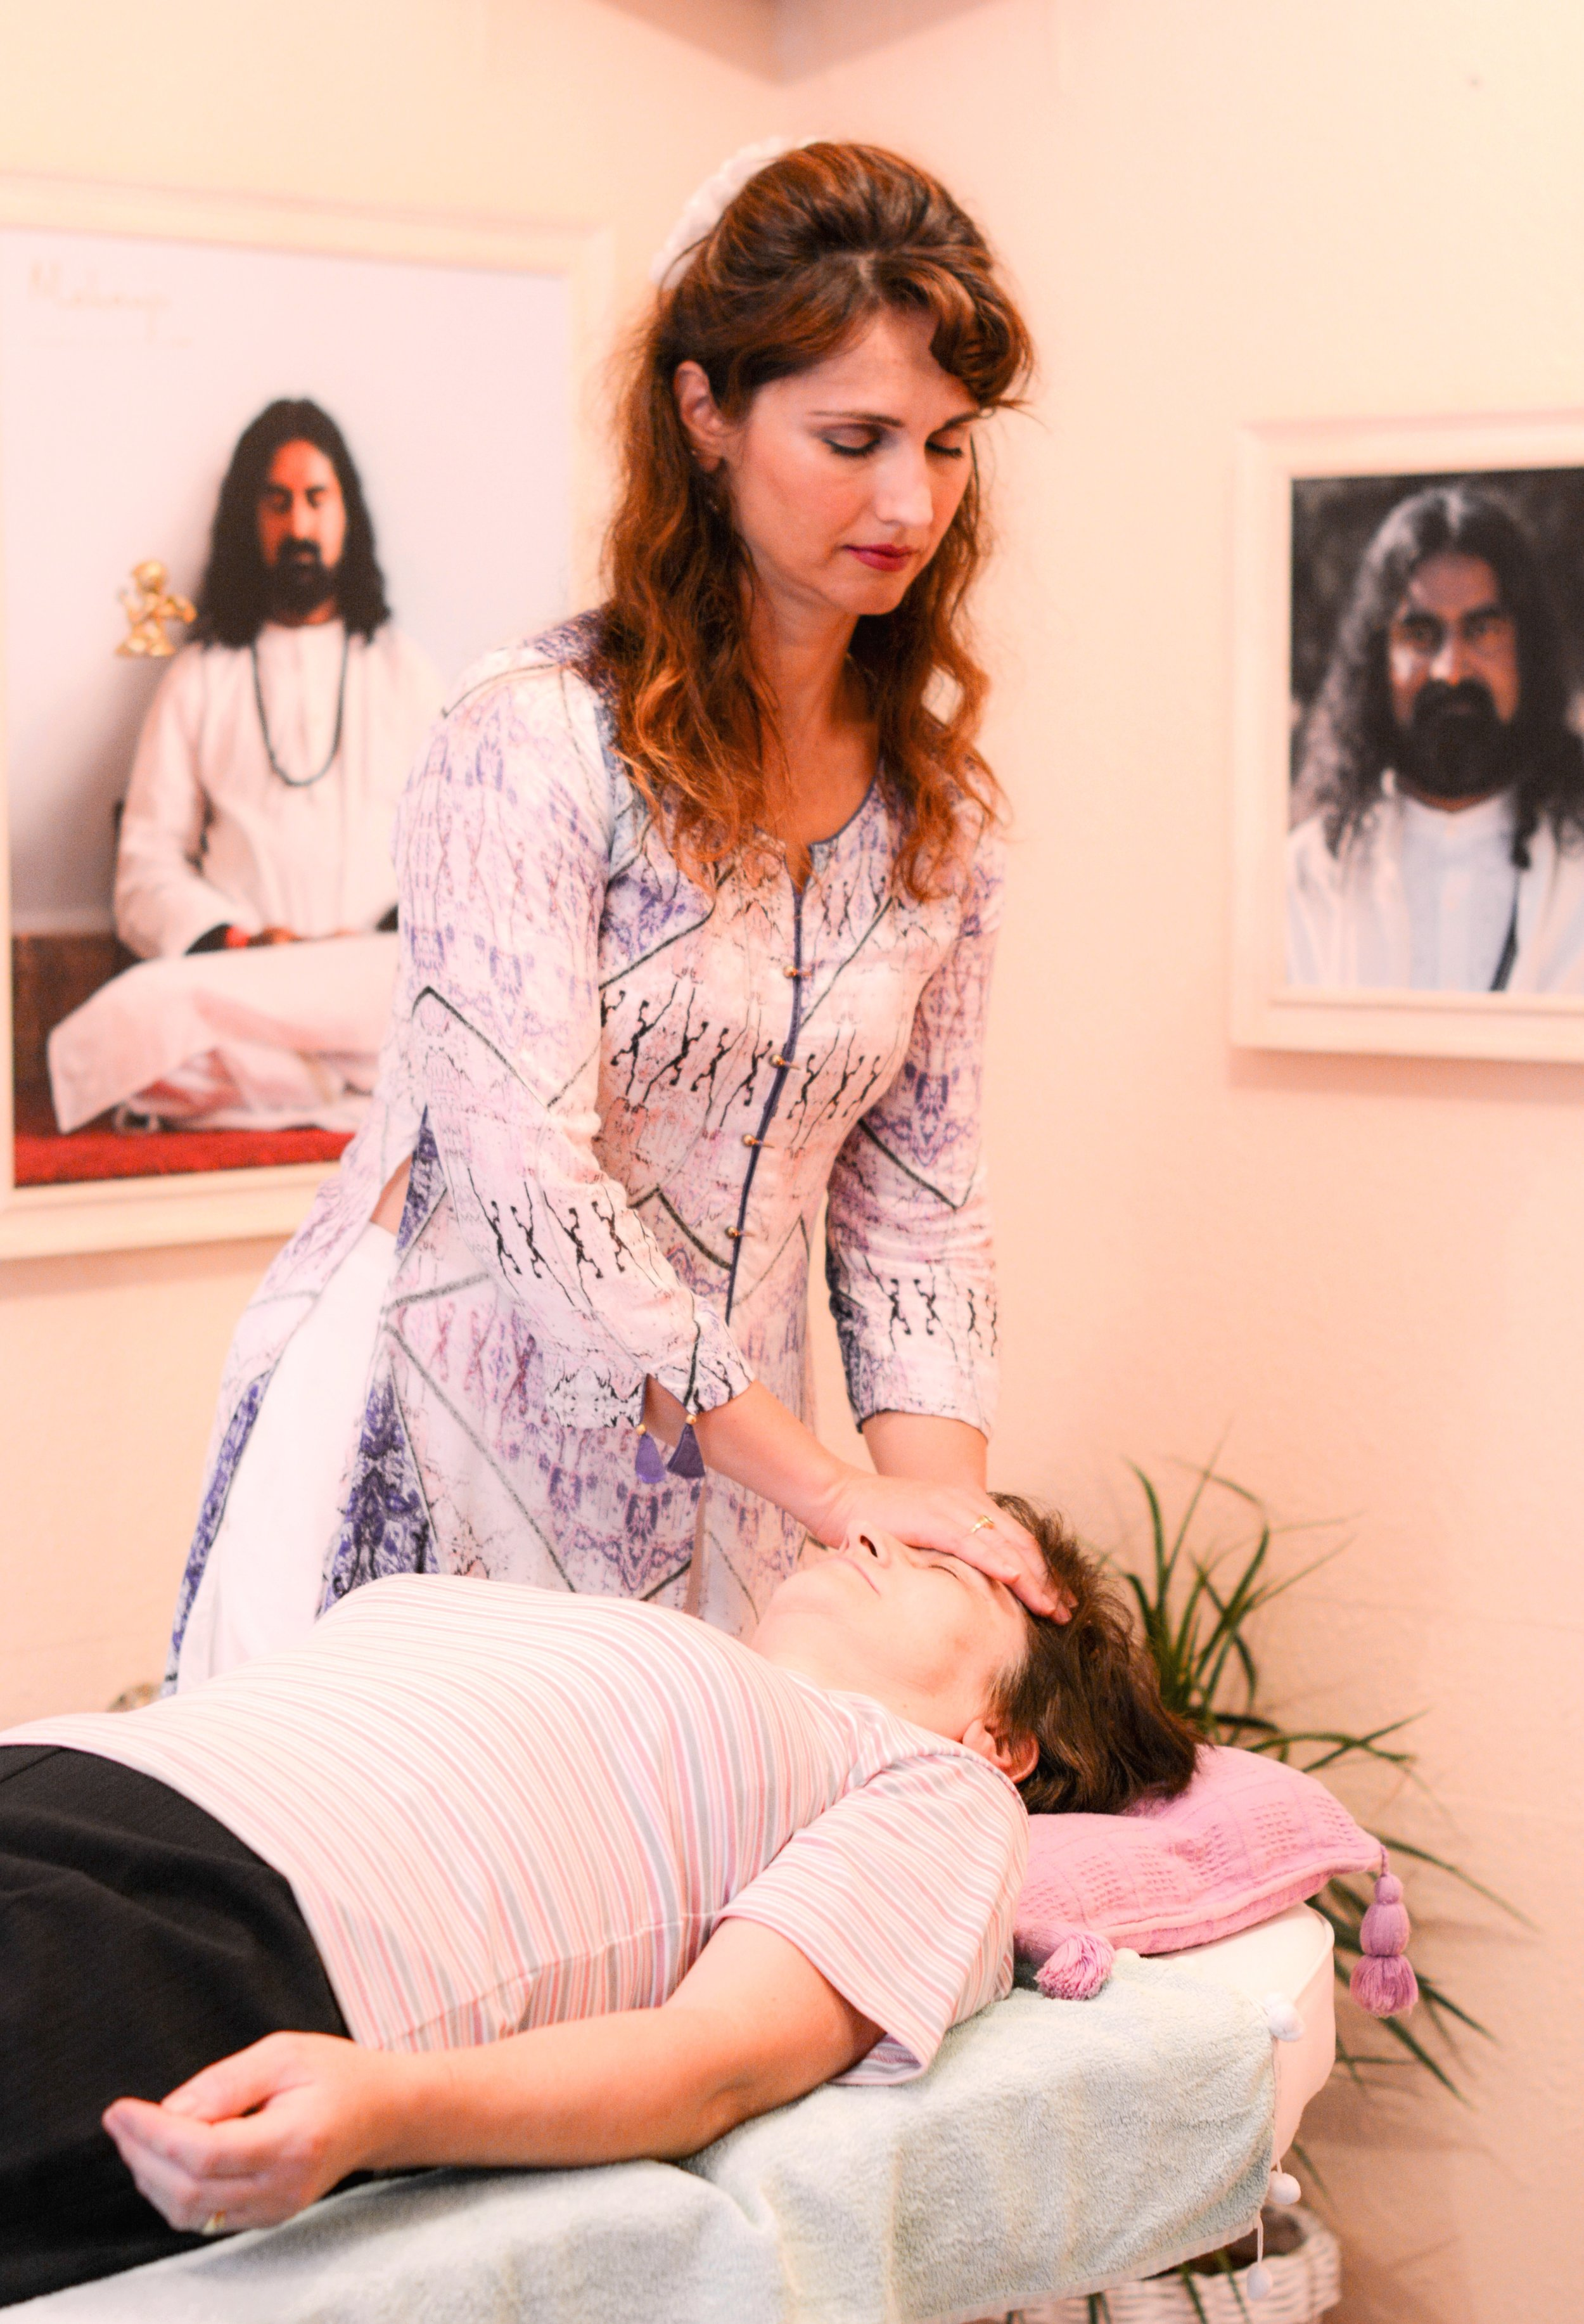 "- This is how Devi describes the experience of Mai-Tri Method:""Loving, warm energy penetrating deep within, all the way to the causal layer....The experience of Mai-Tri Method is beyond words. It is difficult to say what I enjoy more - teaching Yoga or being an instrument of this special technique leading to in-depth self-healing.The Grace that flows during a Mai-Tri session transcends healing - it reaches one's very essence, invoking the sacred inner balance already gifted to each one of us by the Source. Mind will never believe it could be that simple...In the heart of our heart, beyond the karmic blueprint spread over time and space matrix, beyond all the dramas of life, there is That space within, the sacred space filled with purest Love.Like a loving bee extracting the honey, Mai-Tri brings you the taste of that sweetest of Nectar. And to taste it is enough to remember - to remember what we are longing for deep within.It's a great privilege to be an instrument of this energy and experience such height of Love in the human body.. """